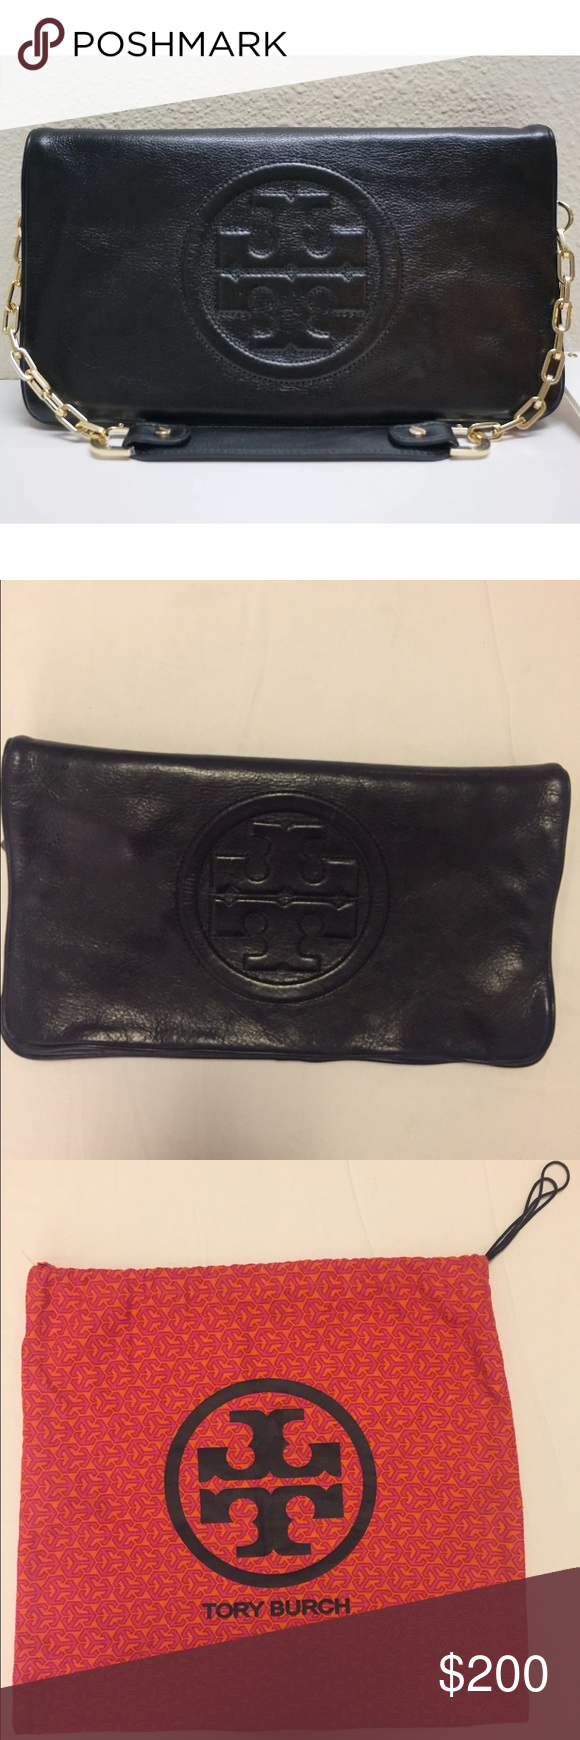 Tory Burch Reva Clutch Black Tory Burch Reva clutch/ hangbag in black. Removable strap. Comes with dust bag. Tory Burch Bags Clutches & Wristlets